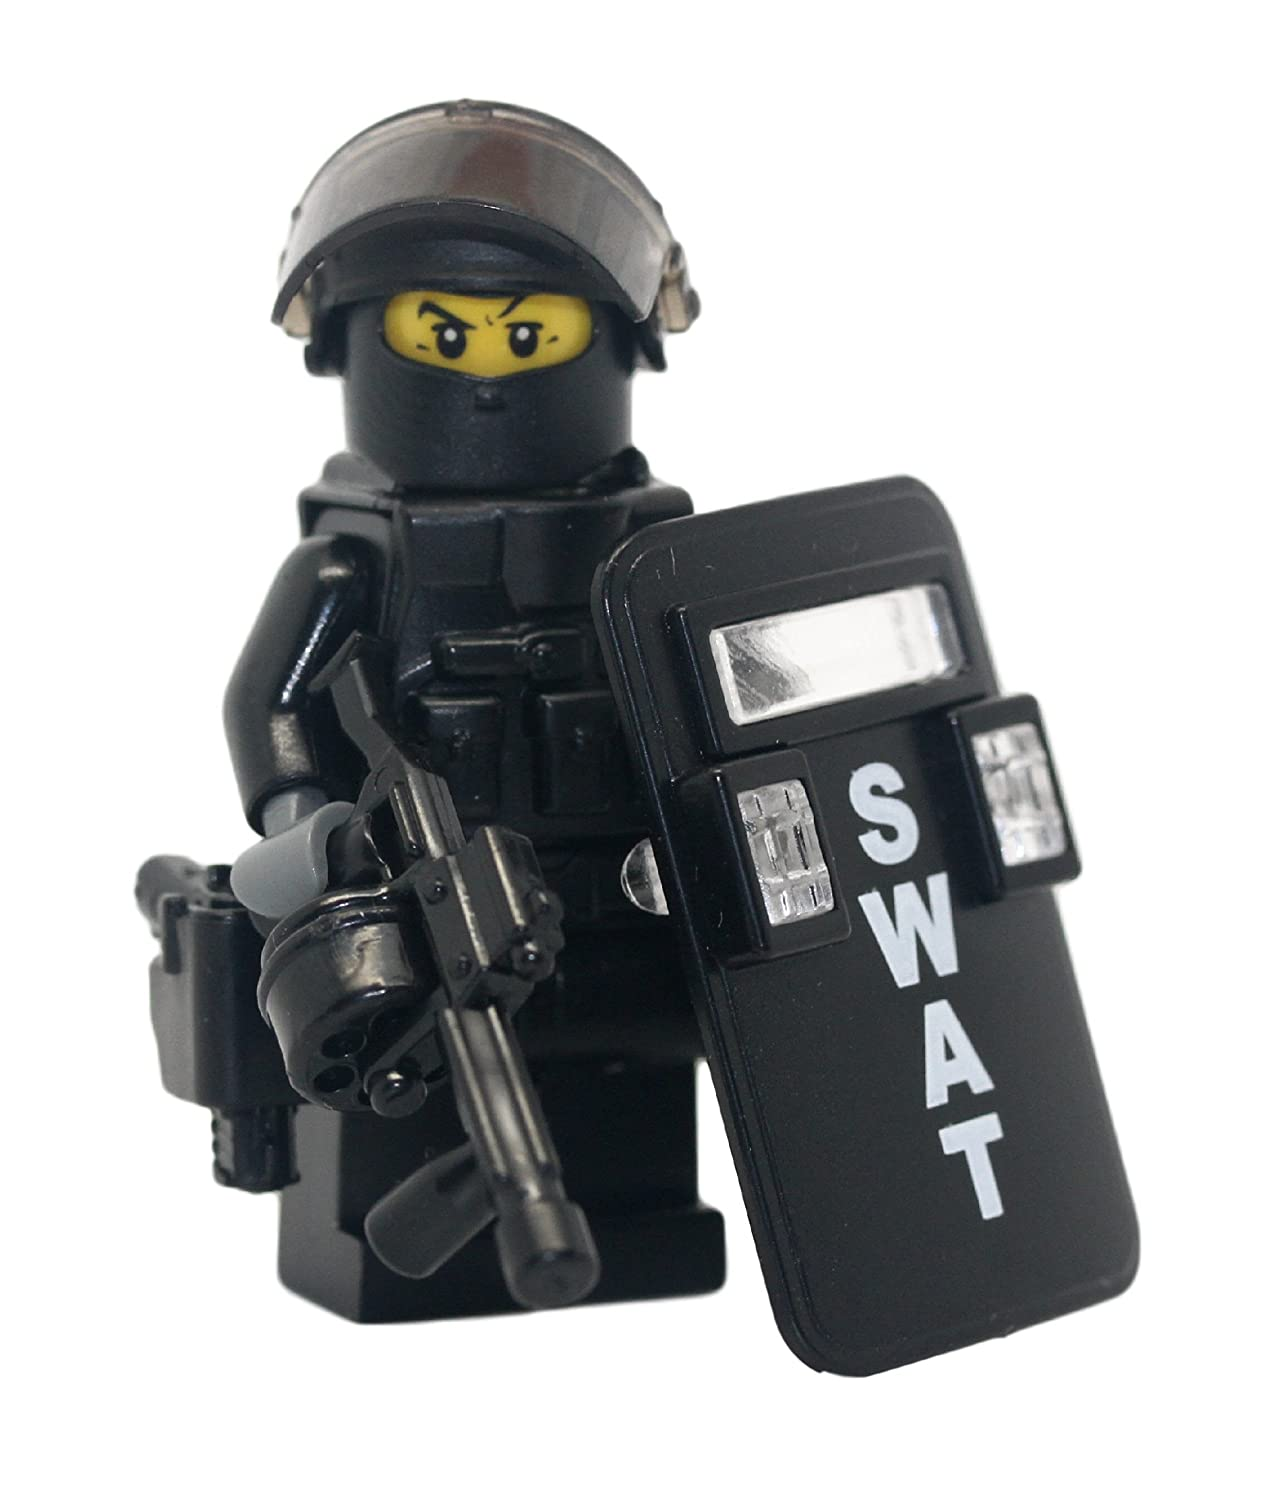 Amazon.com: SWAT Police Riot Control Officer - Modern Brick Warfare ...